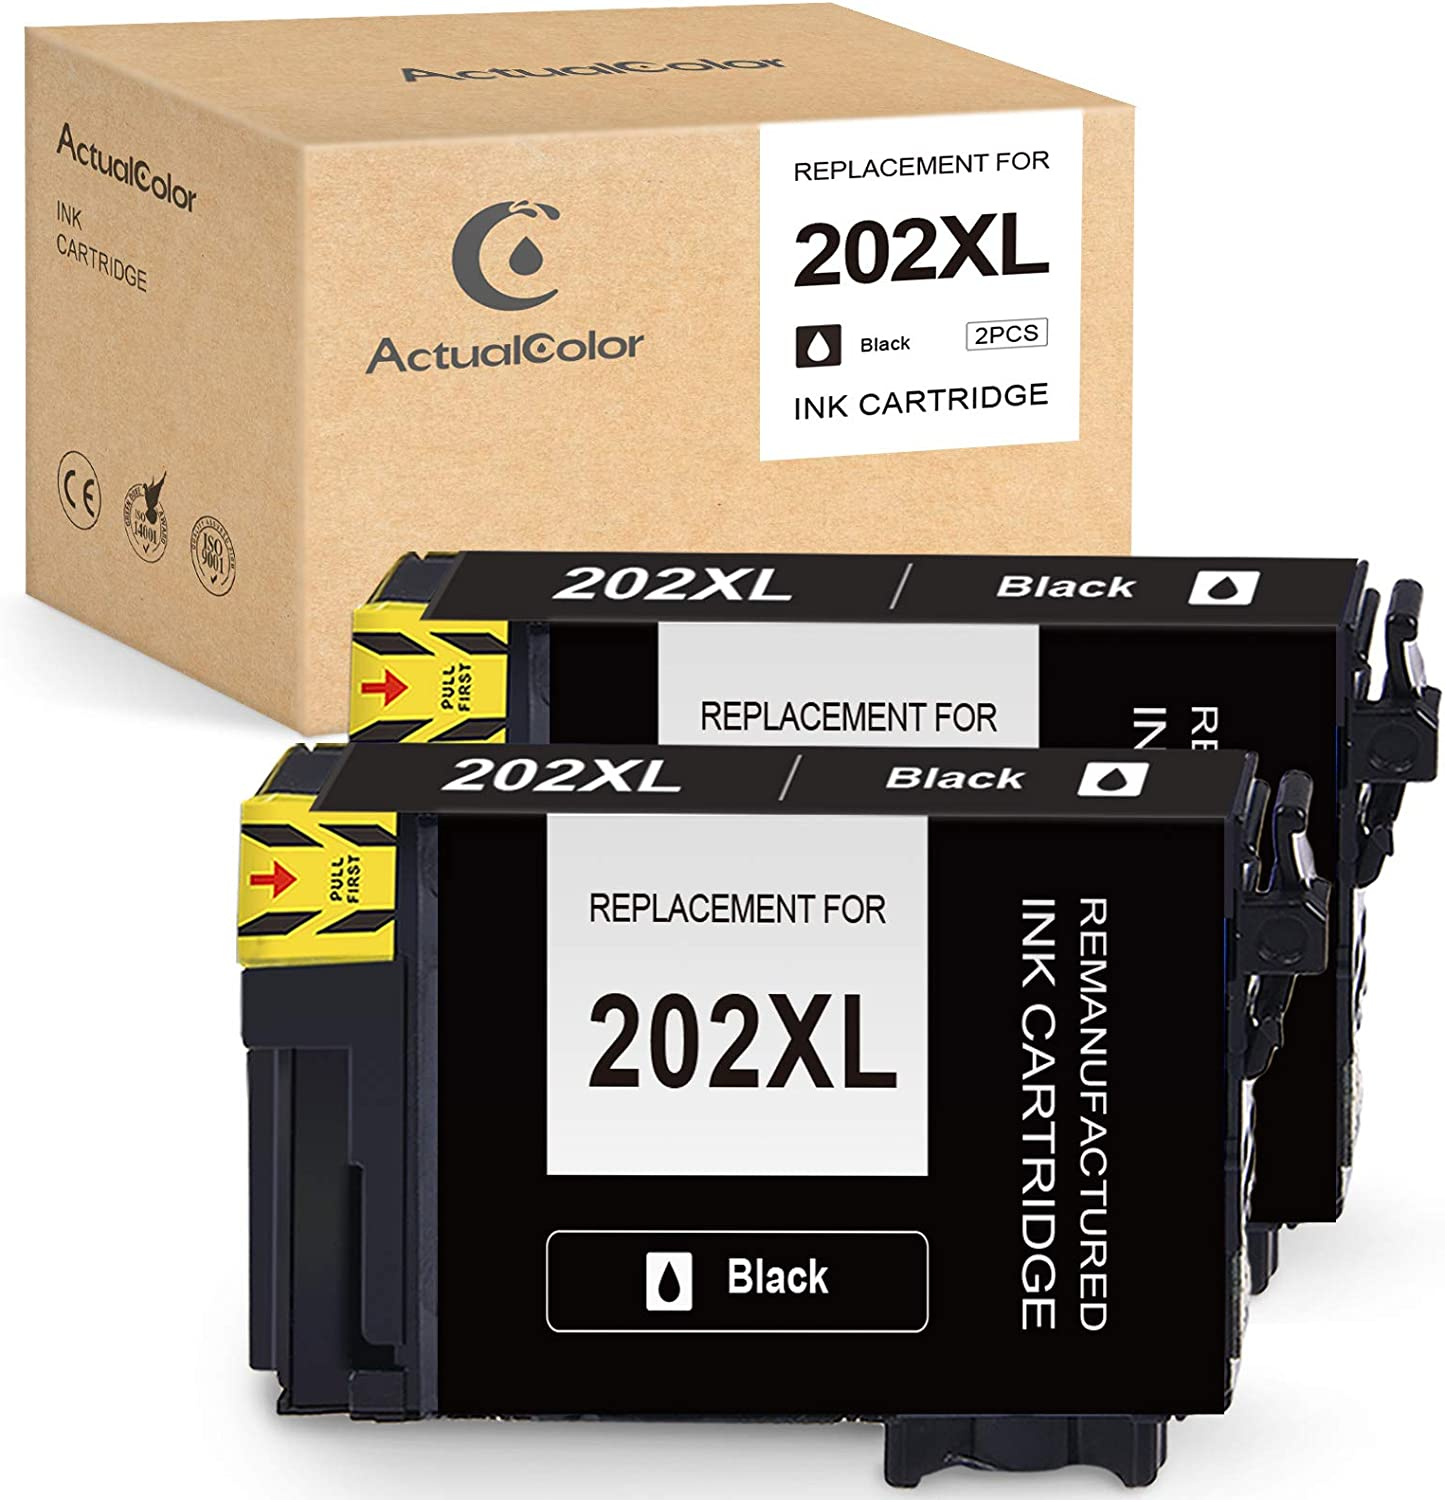 ActualColor C Remanufactured Ink Cartridge Replacement for Epson 202 XL 202XL T202XL T202XL120 for Workforce WF-2860 Expression Home XP-5100 Printer (2 Black)